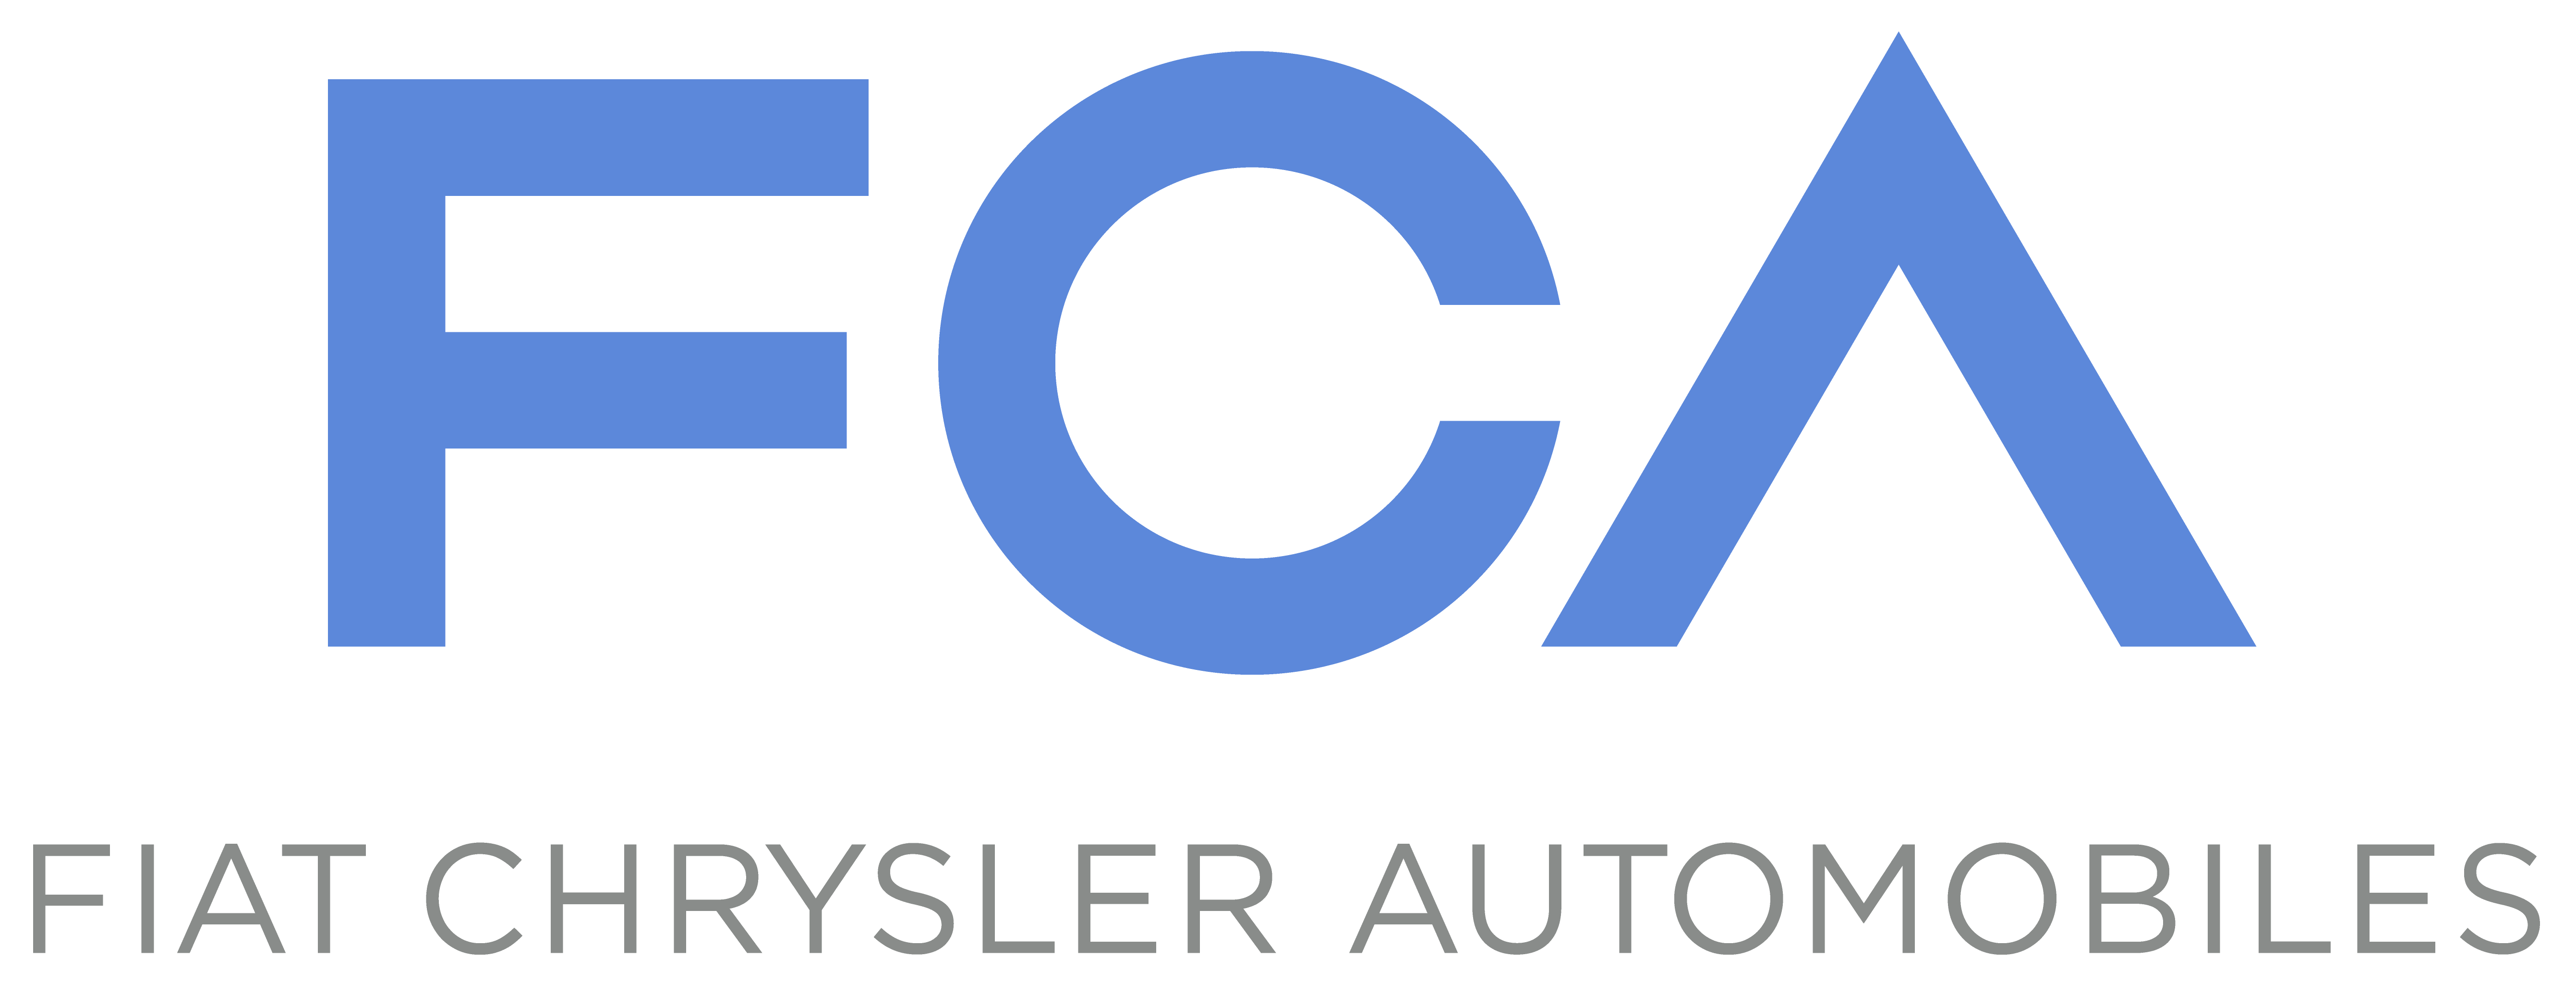 FCA Logo - File:Logo Fiat Chrysler Automobiles.png - Wikimedia Commons